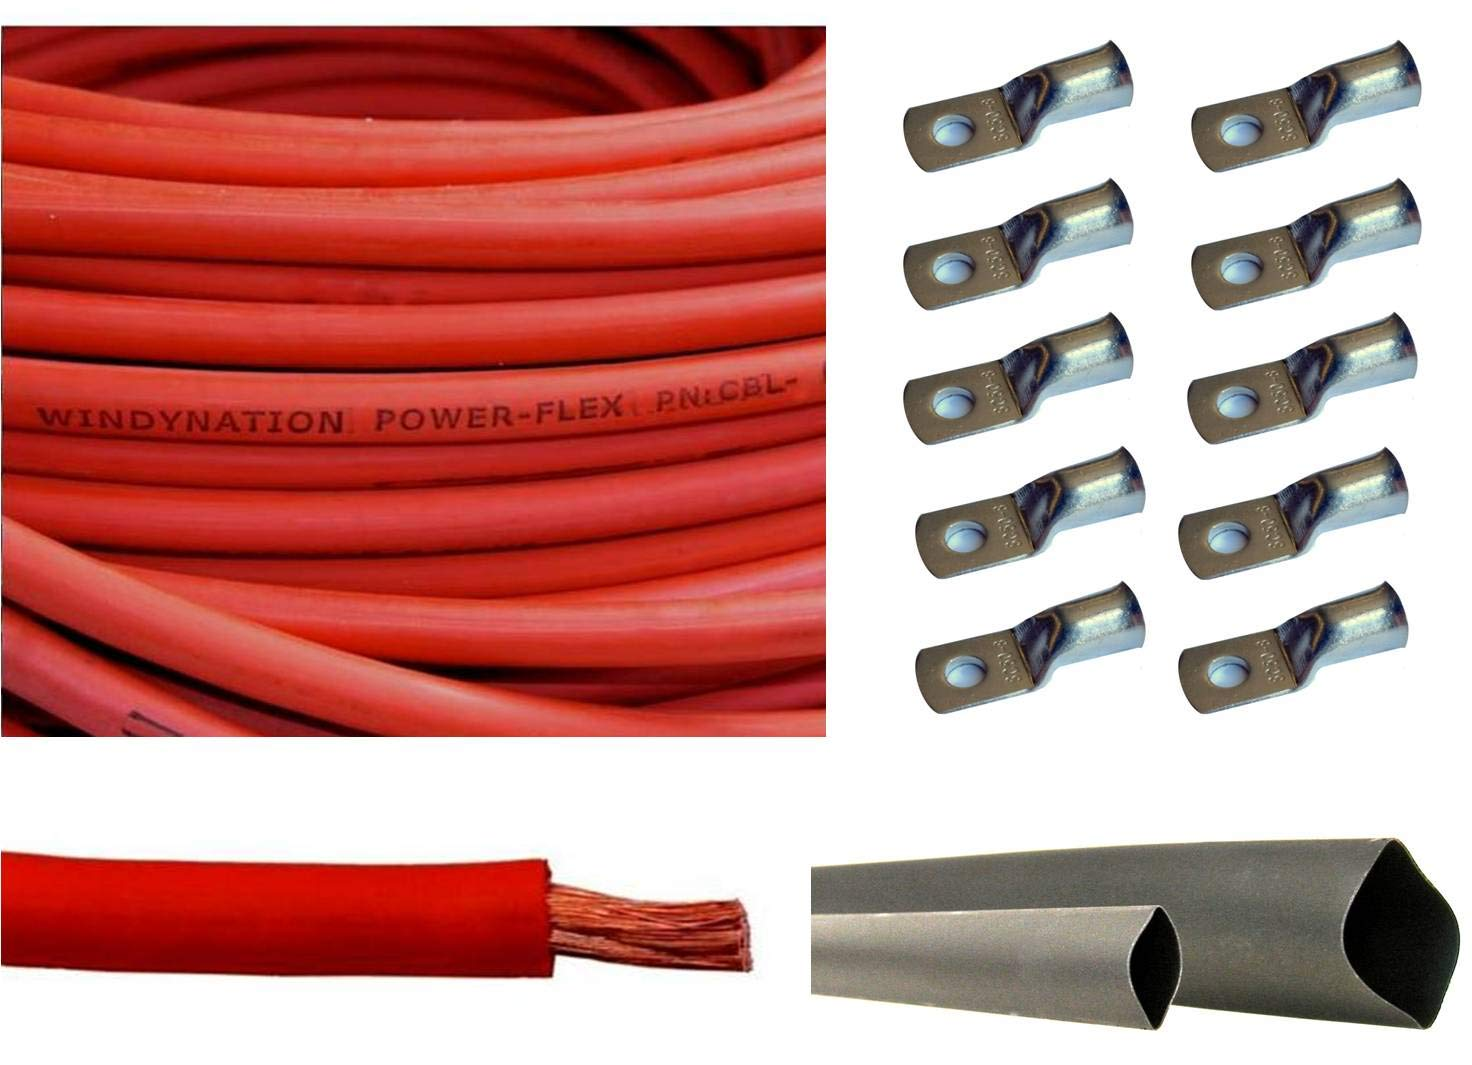 3 Feet Heat Shrink Tubing 5pcs of 5//16 /& 5pcs 3//8 Copper Cable Lug Terminal Connectors WNI 6 AWG 6 Gauge 30 Feet Red Battery Welding Pure Copper Ultra Flexible Cable